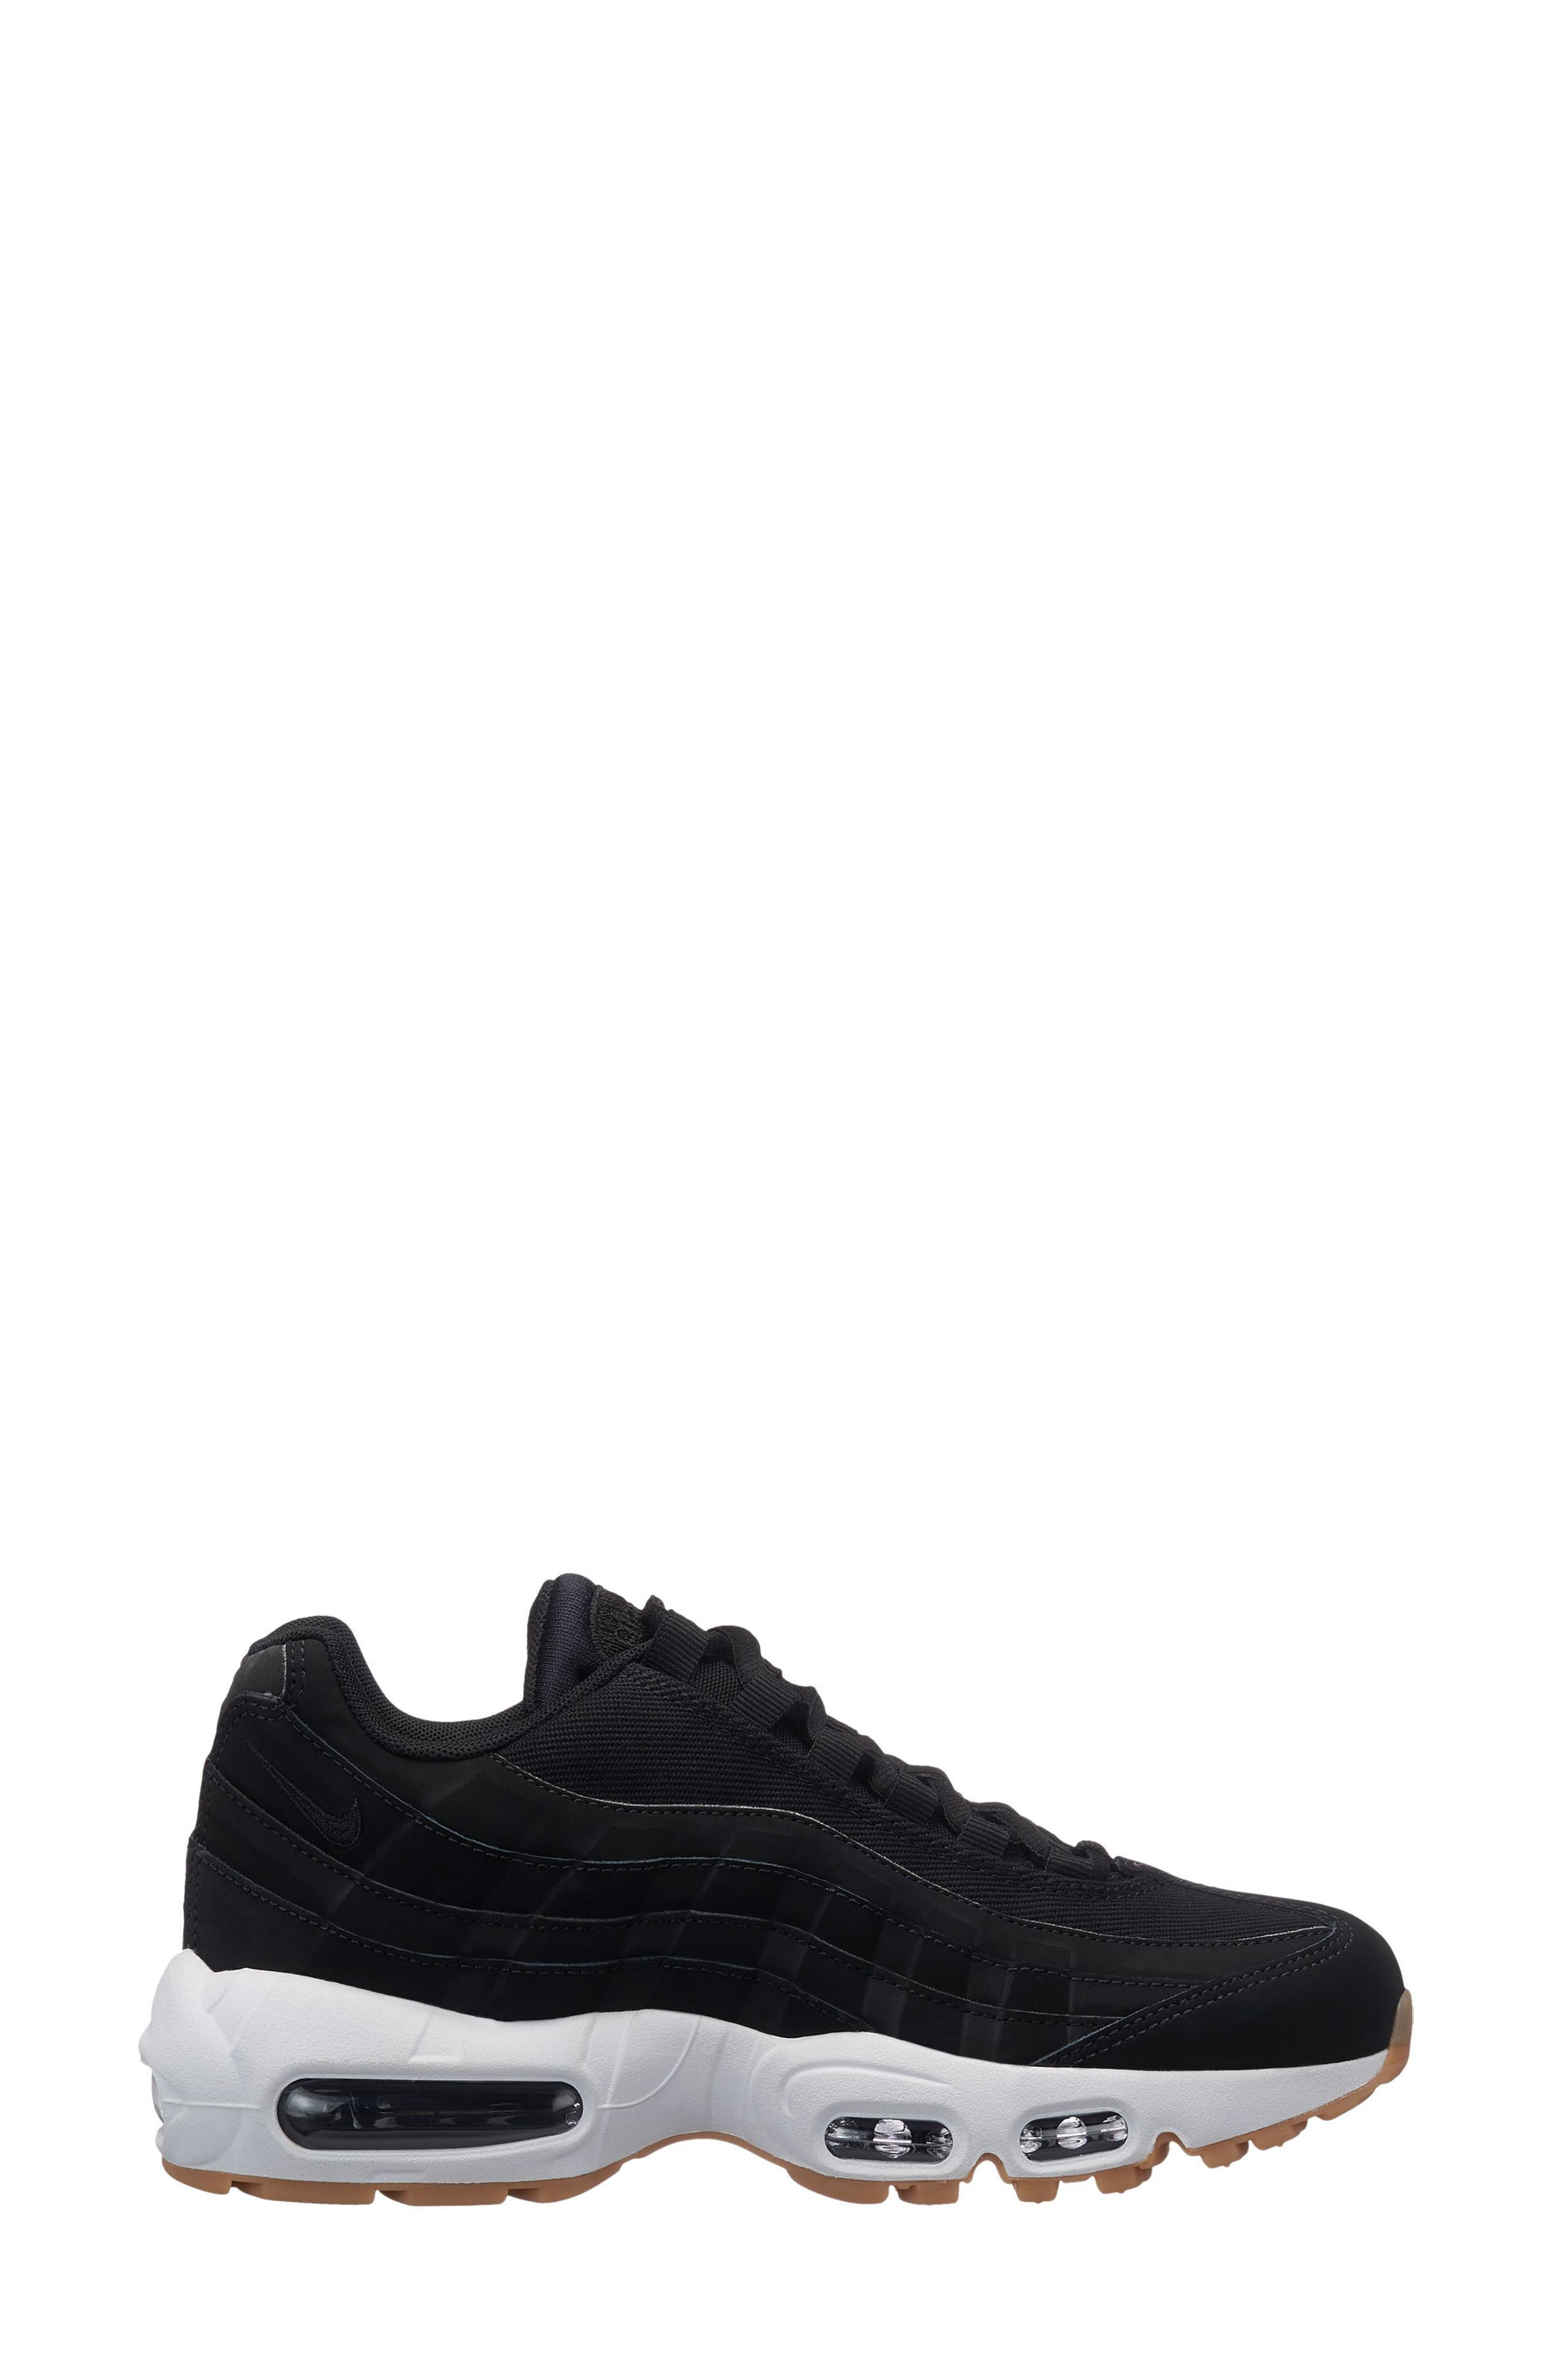 Air Max 95 Running Shoe,                             Main thumbnail 1, color,                             Black